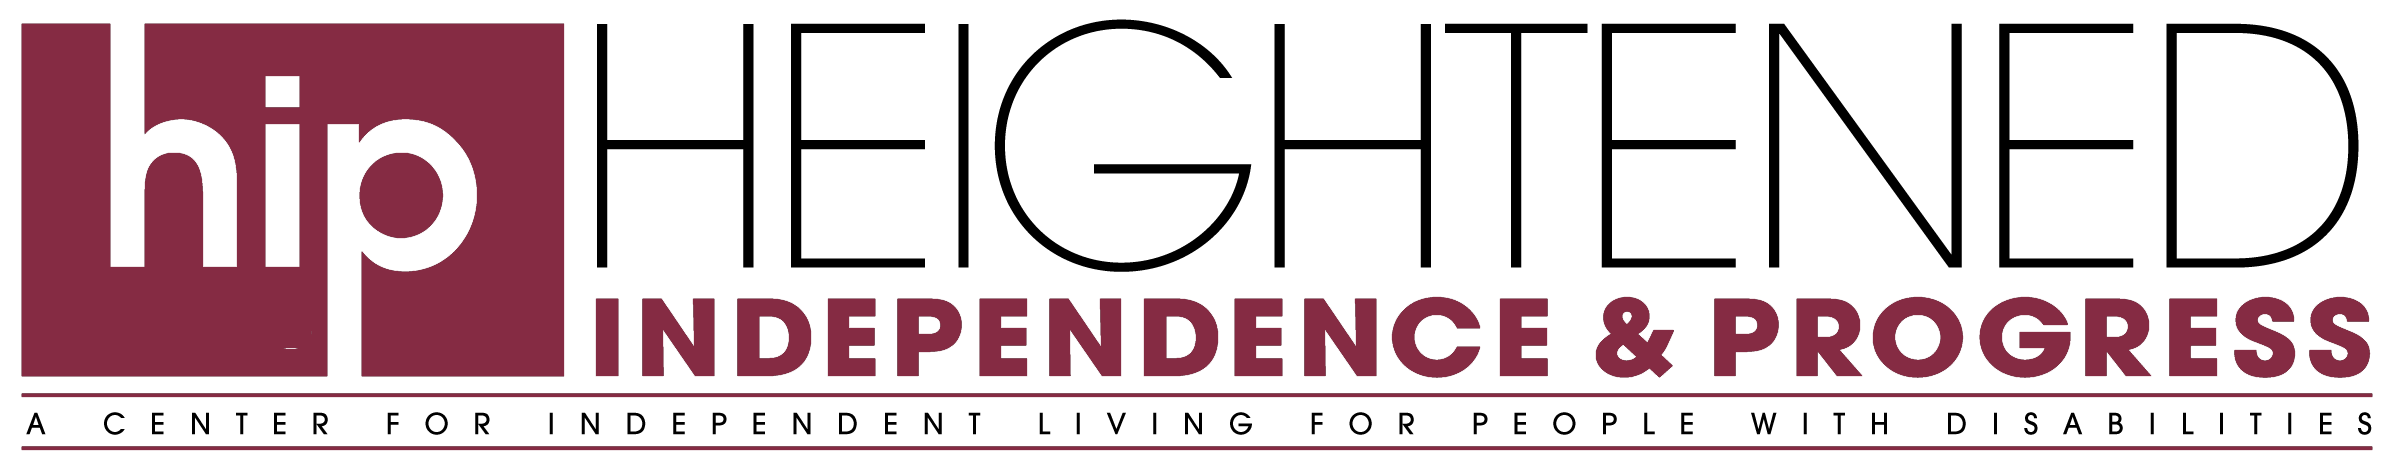 Heightened Independence & Progress - Our staff